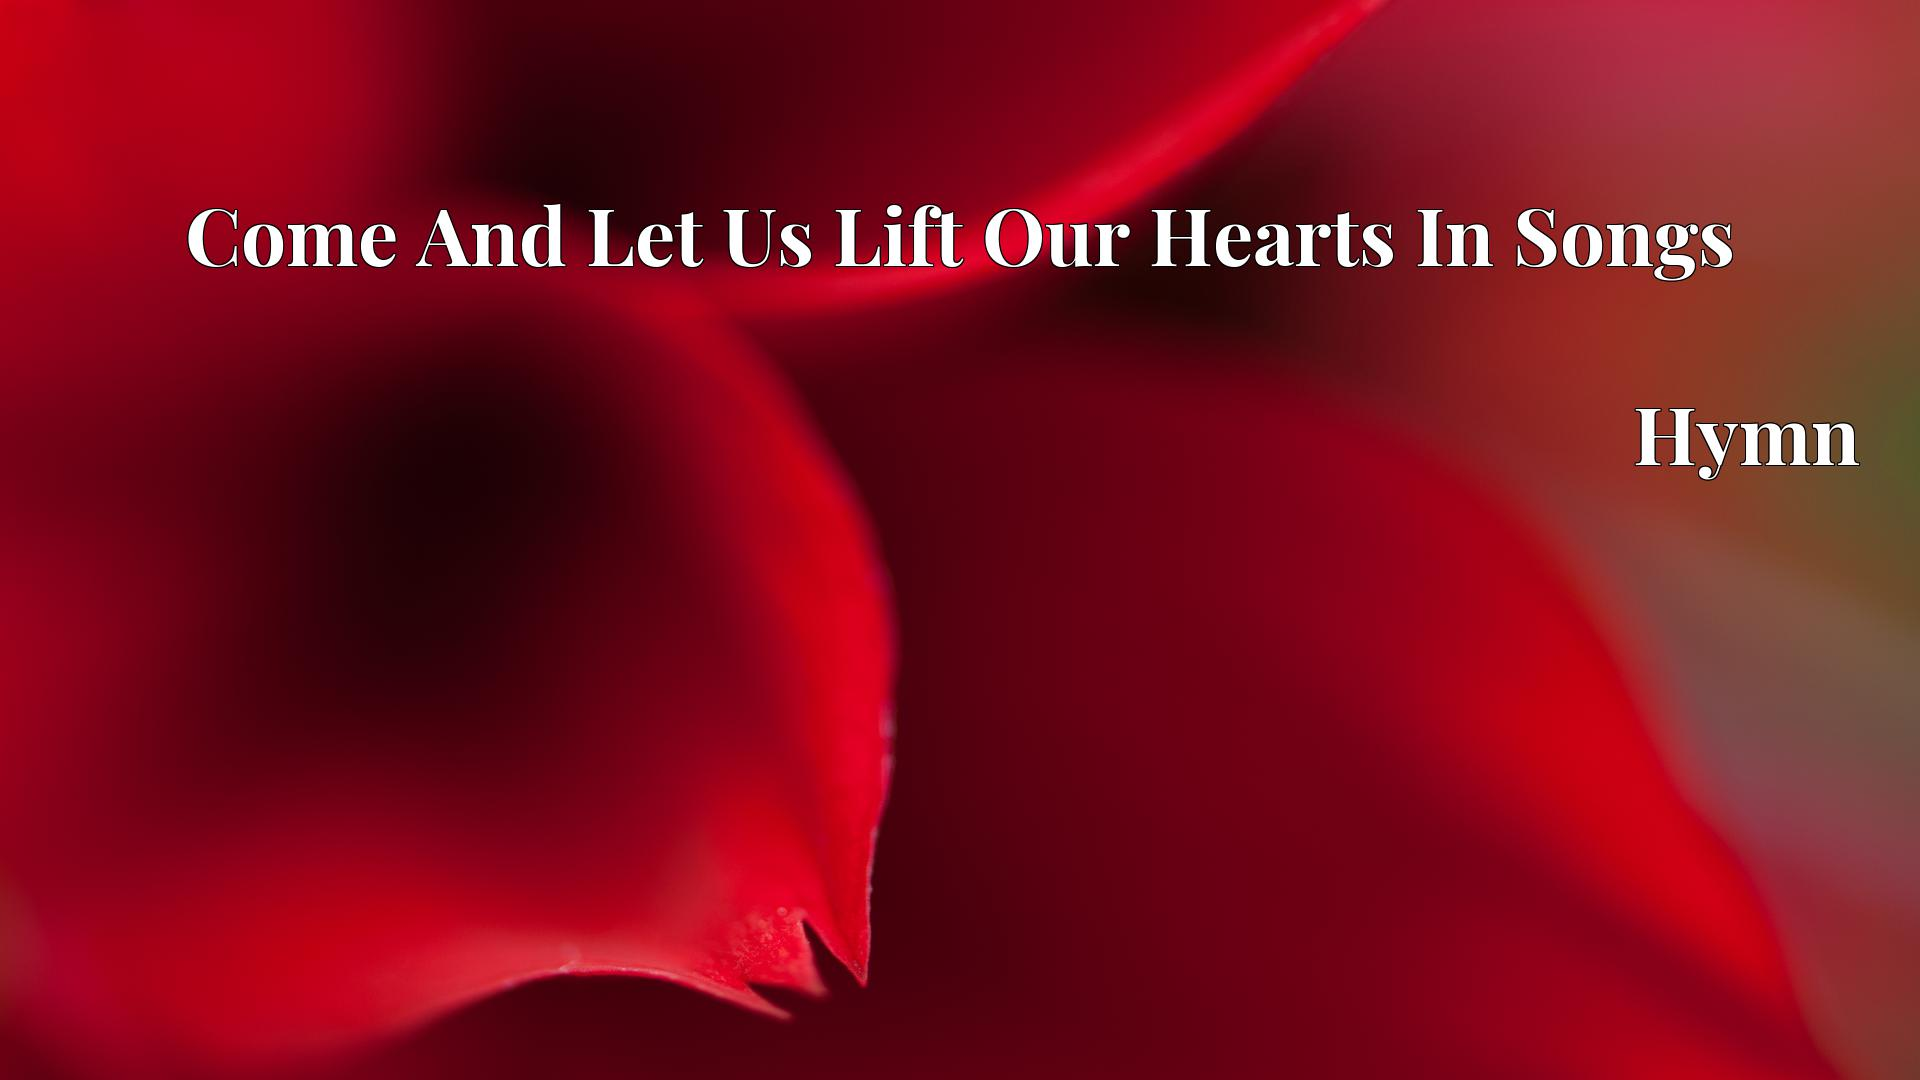 Come And Let Us Lift Our Hearts In Songs - Hymn